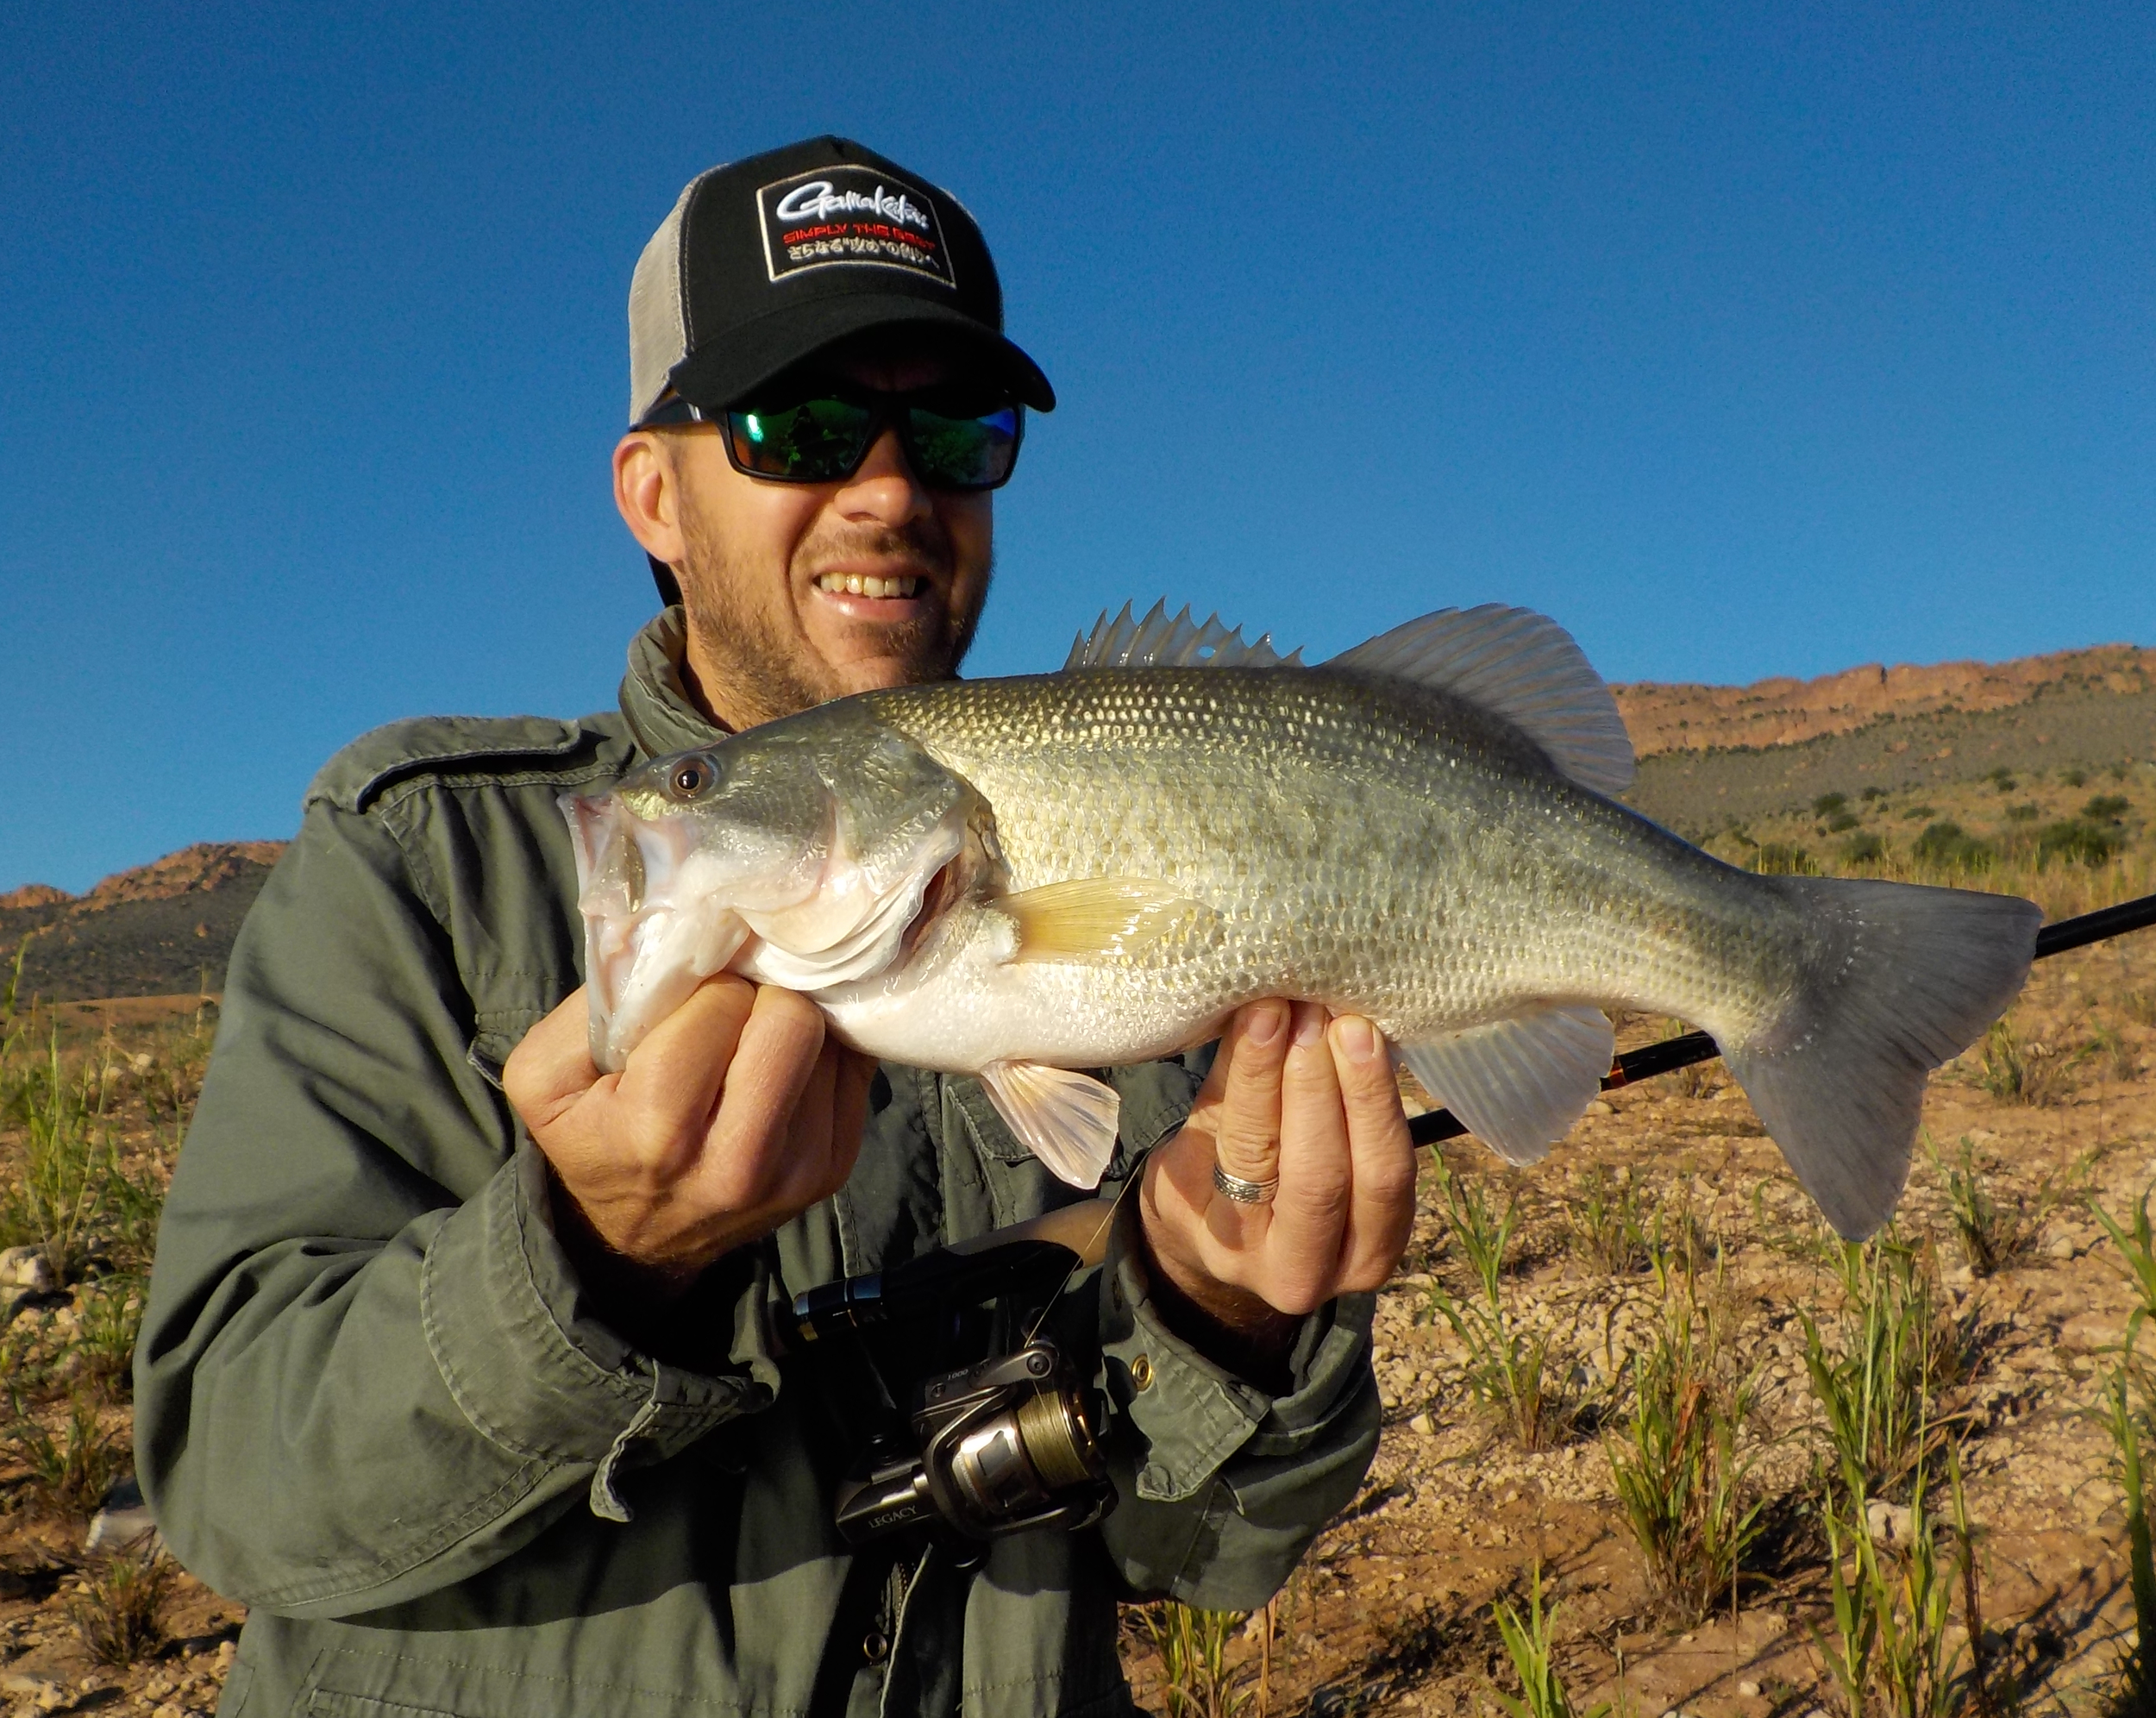 """My first bass of the reckoning trip caught with my new SURVERY rod from Gamakatsu on a c-rig with a 7,5"""" black/green tail worm from Bass Assassin."""